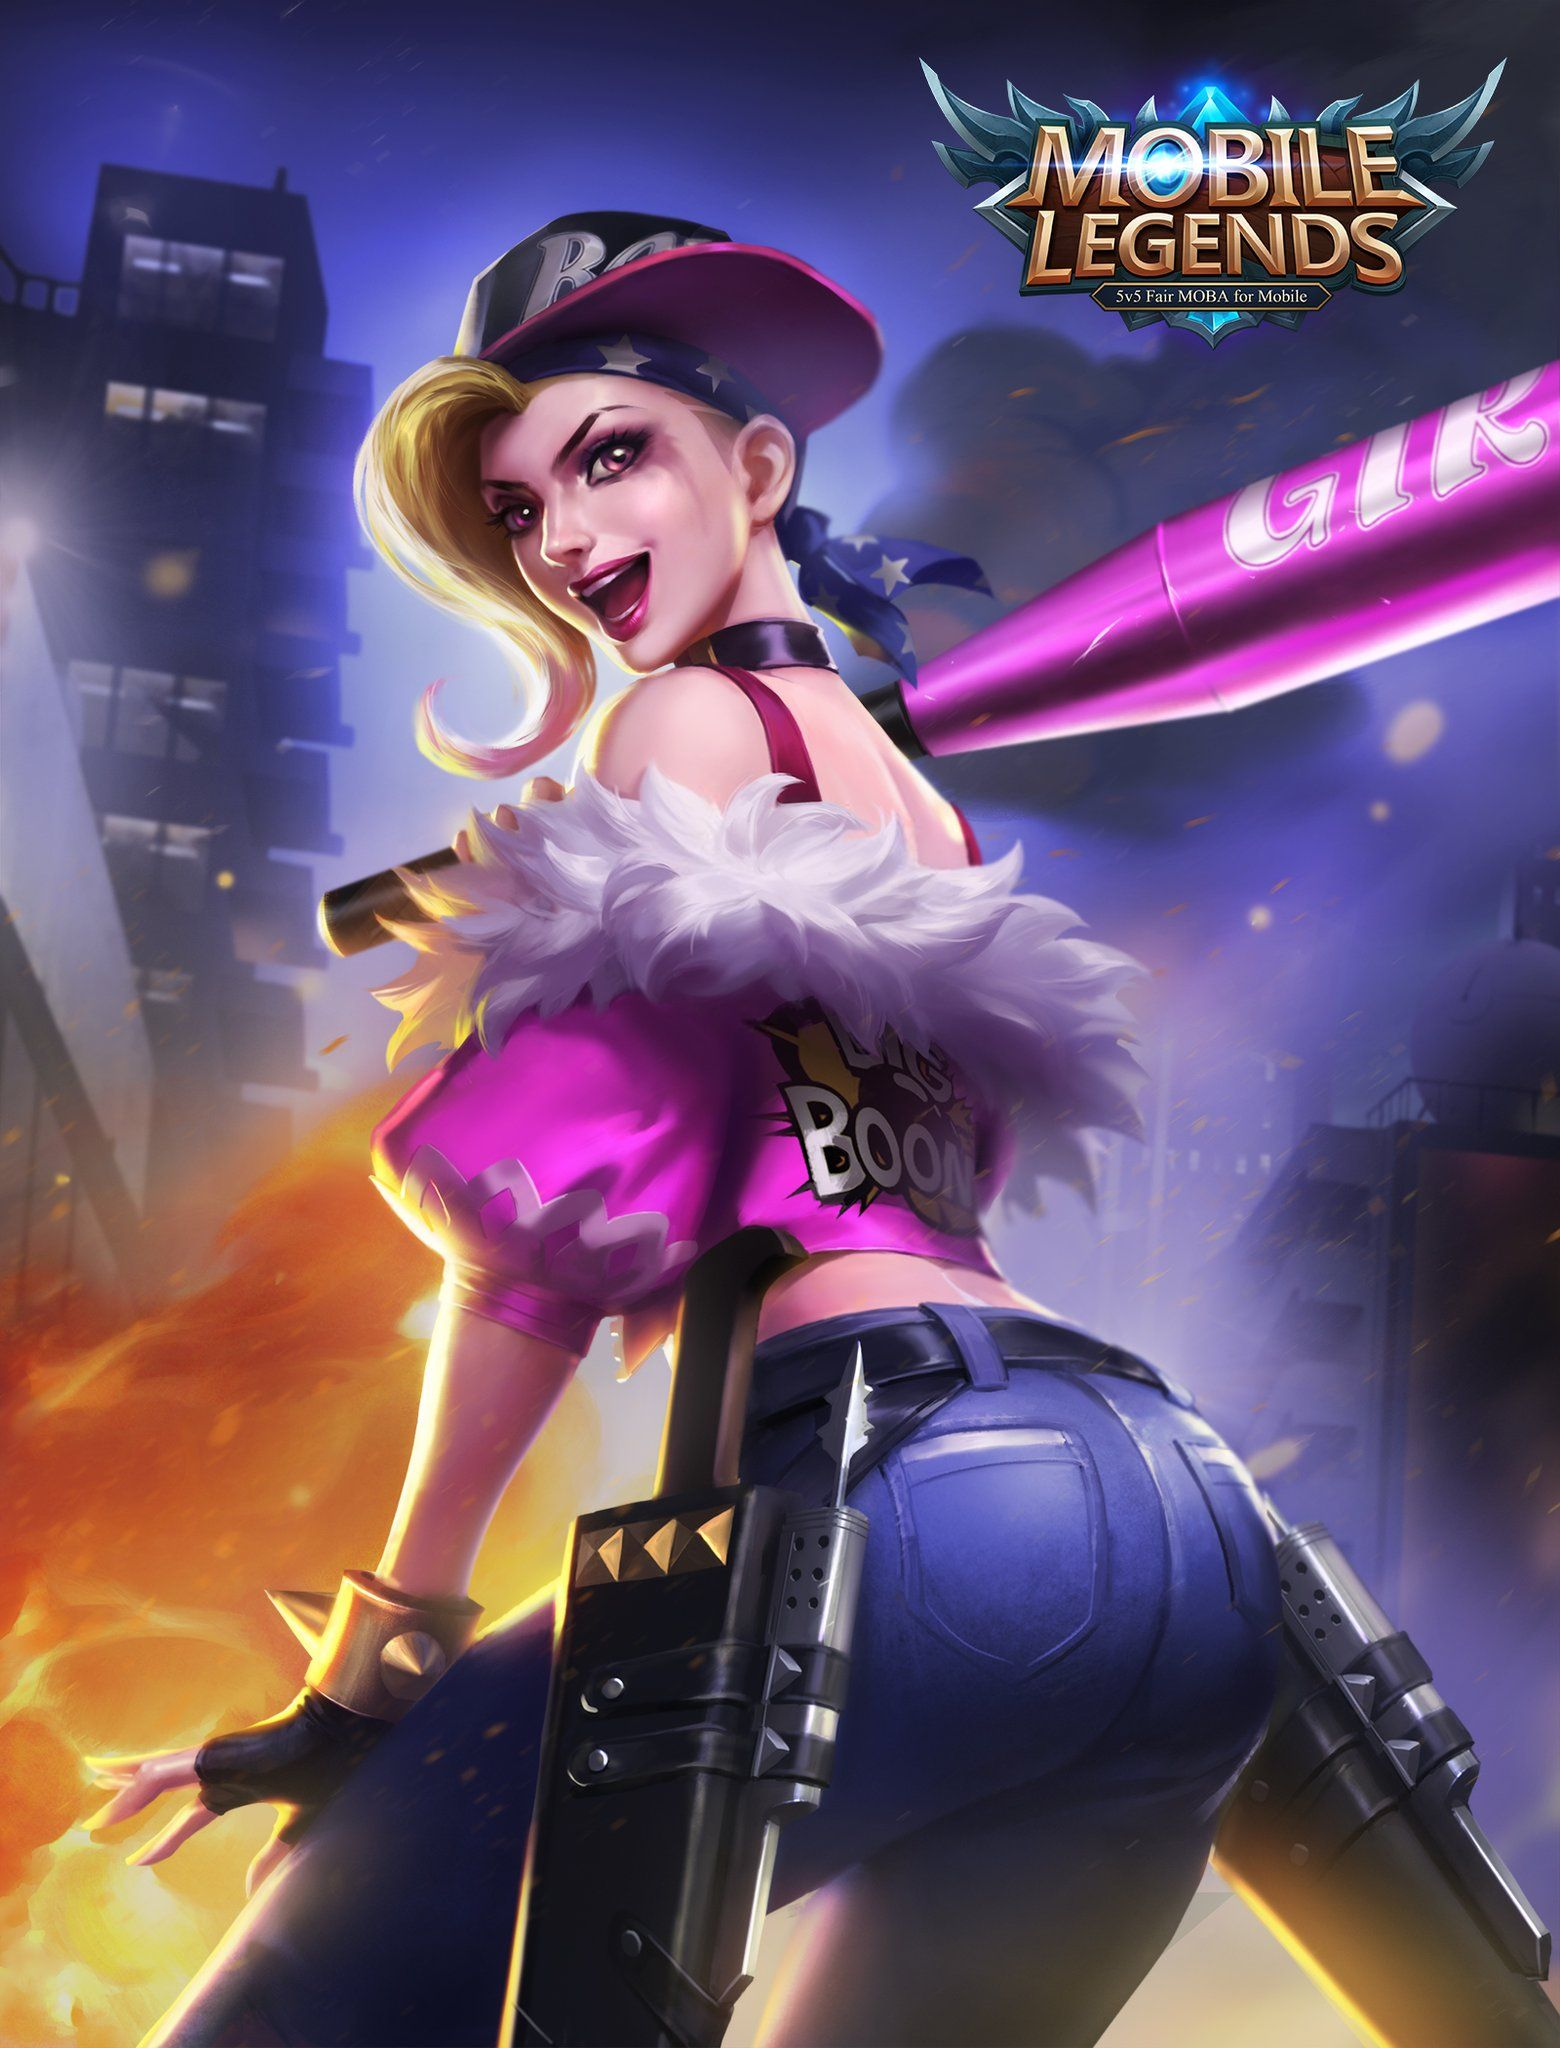 Wallpaper-Mobile-Legends-Fanny-Punk-Princess